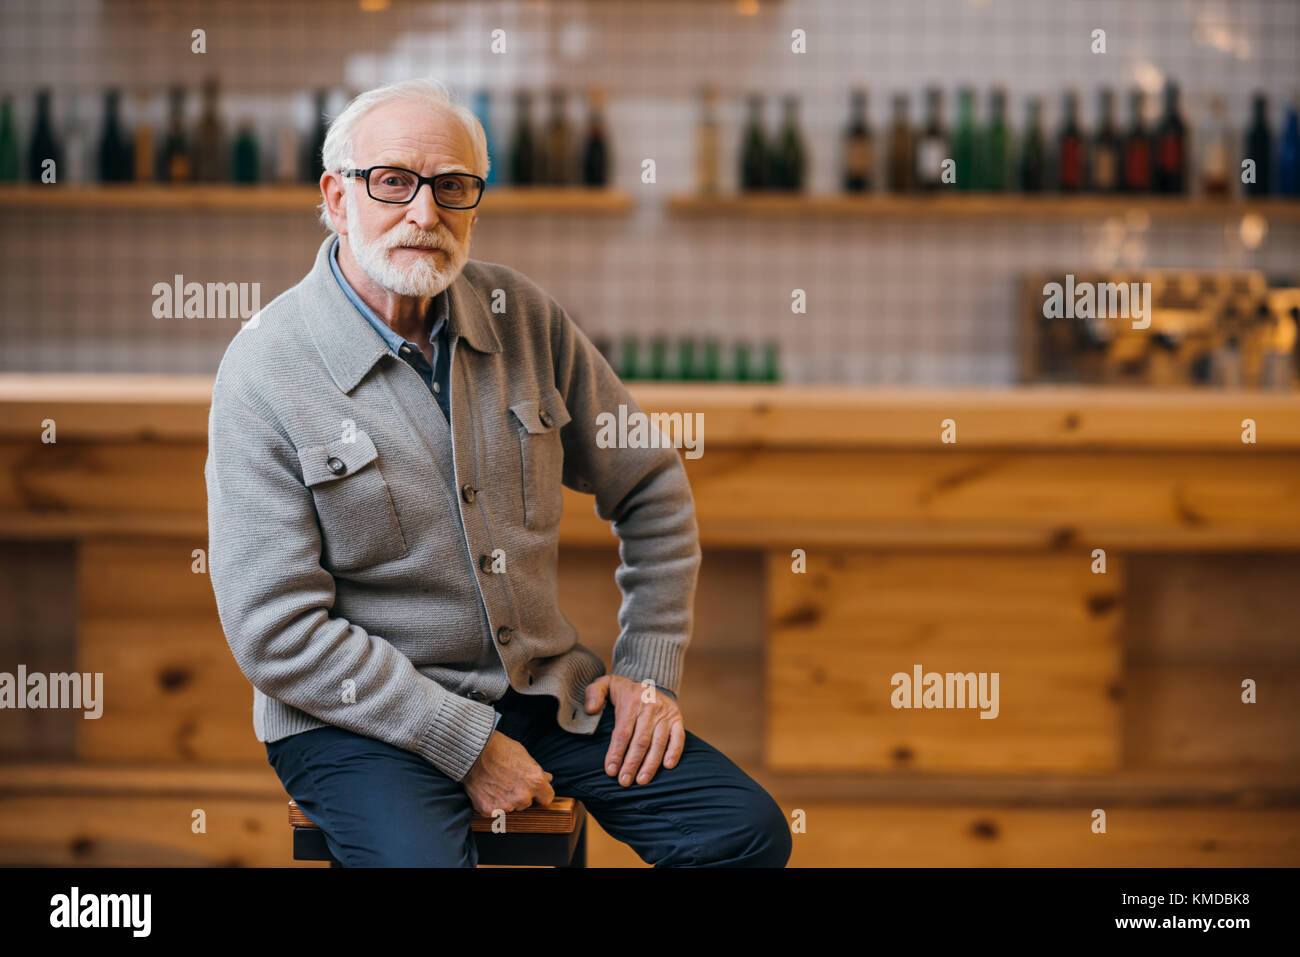 senior man at bar - Stock Image